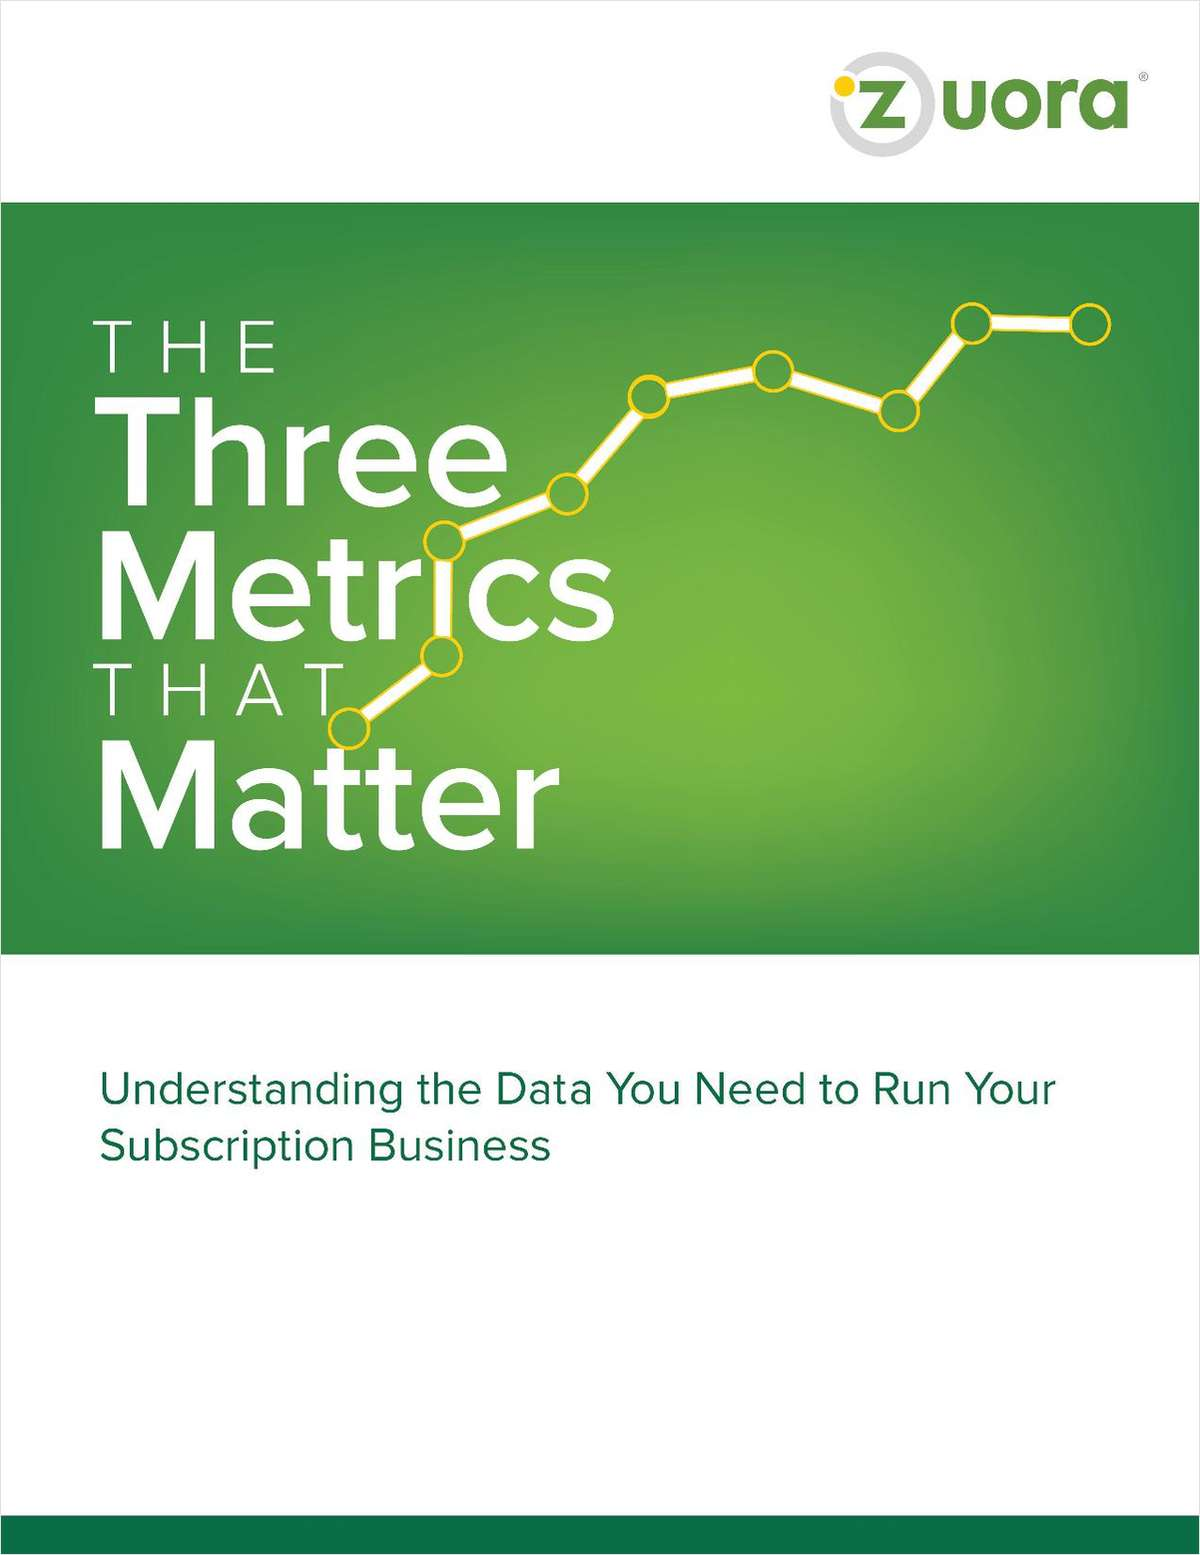 The 3 Metrics That Matter: Understanding the Data You Need to Run Your Subscription Business